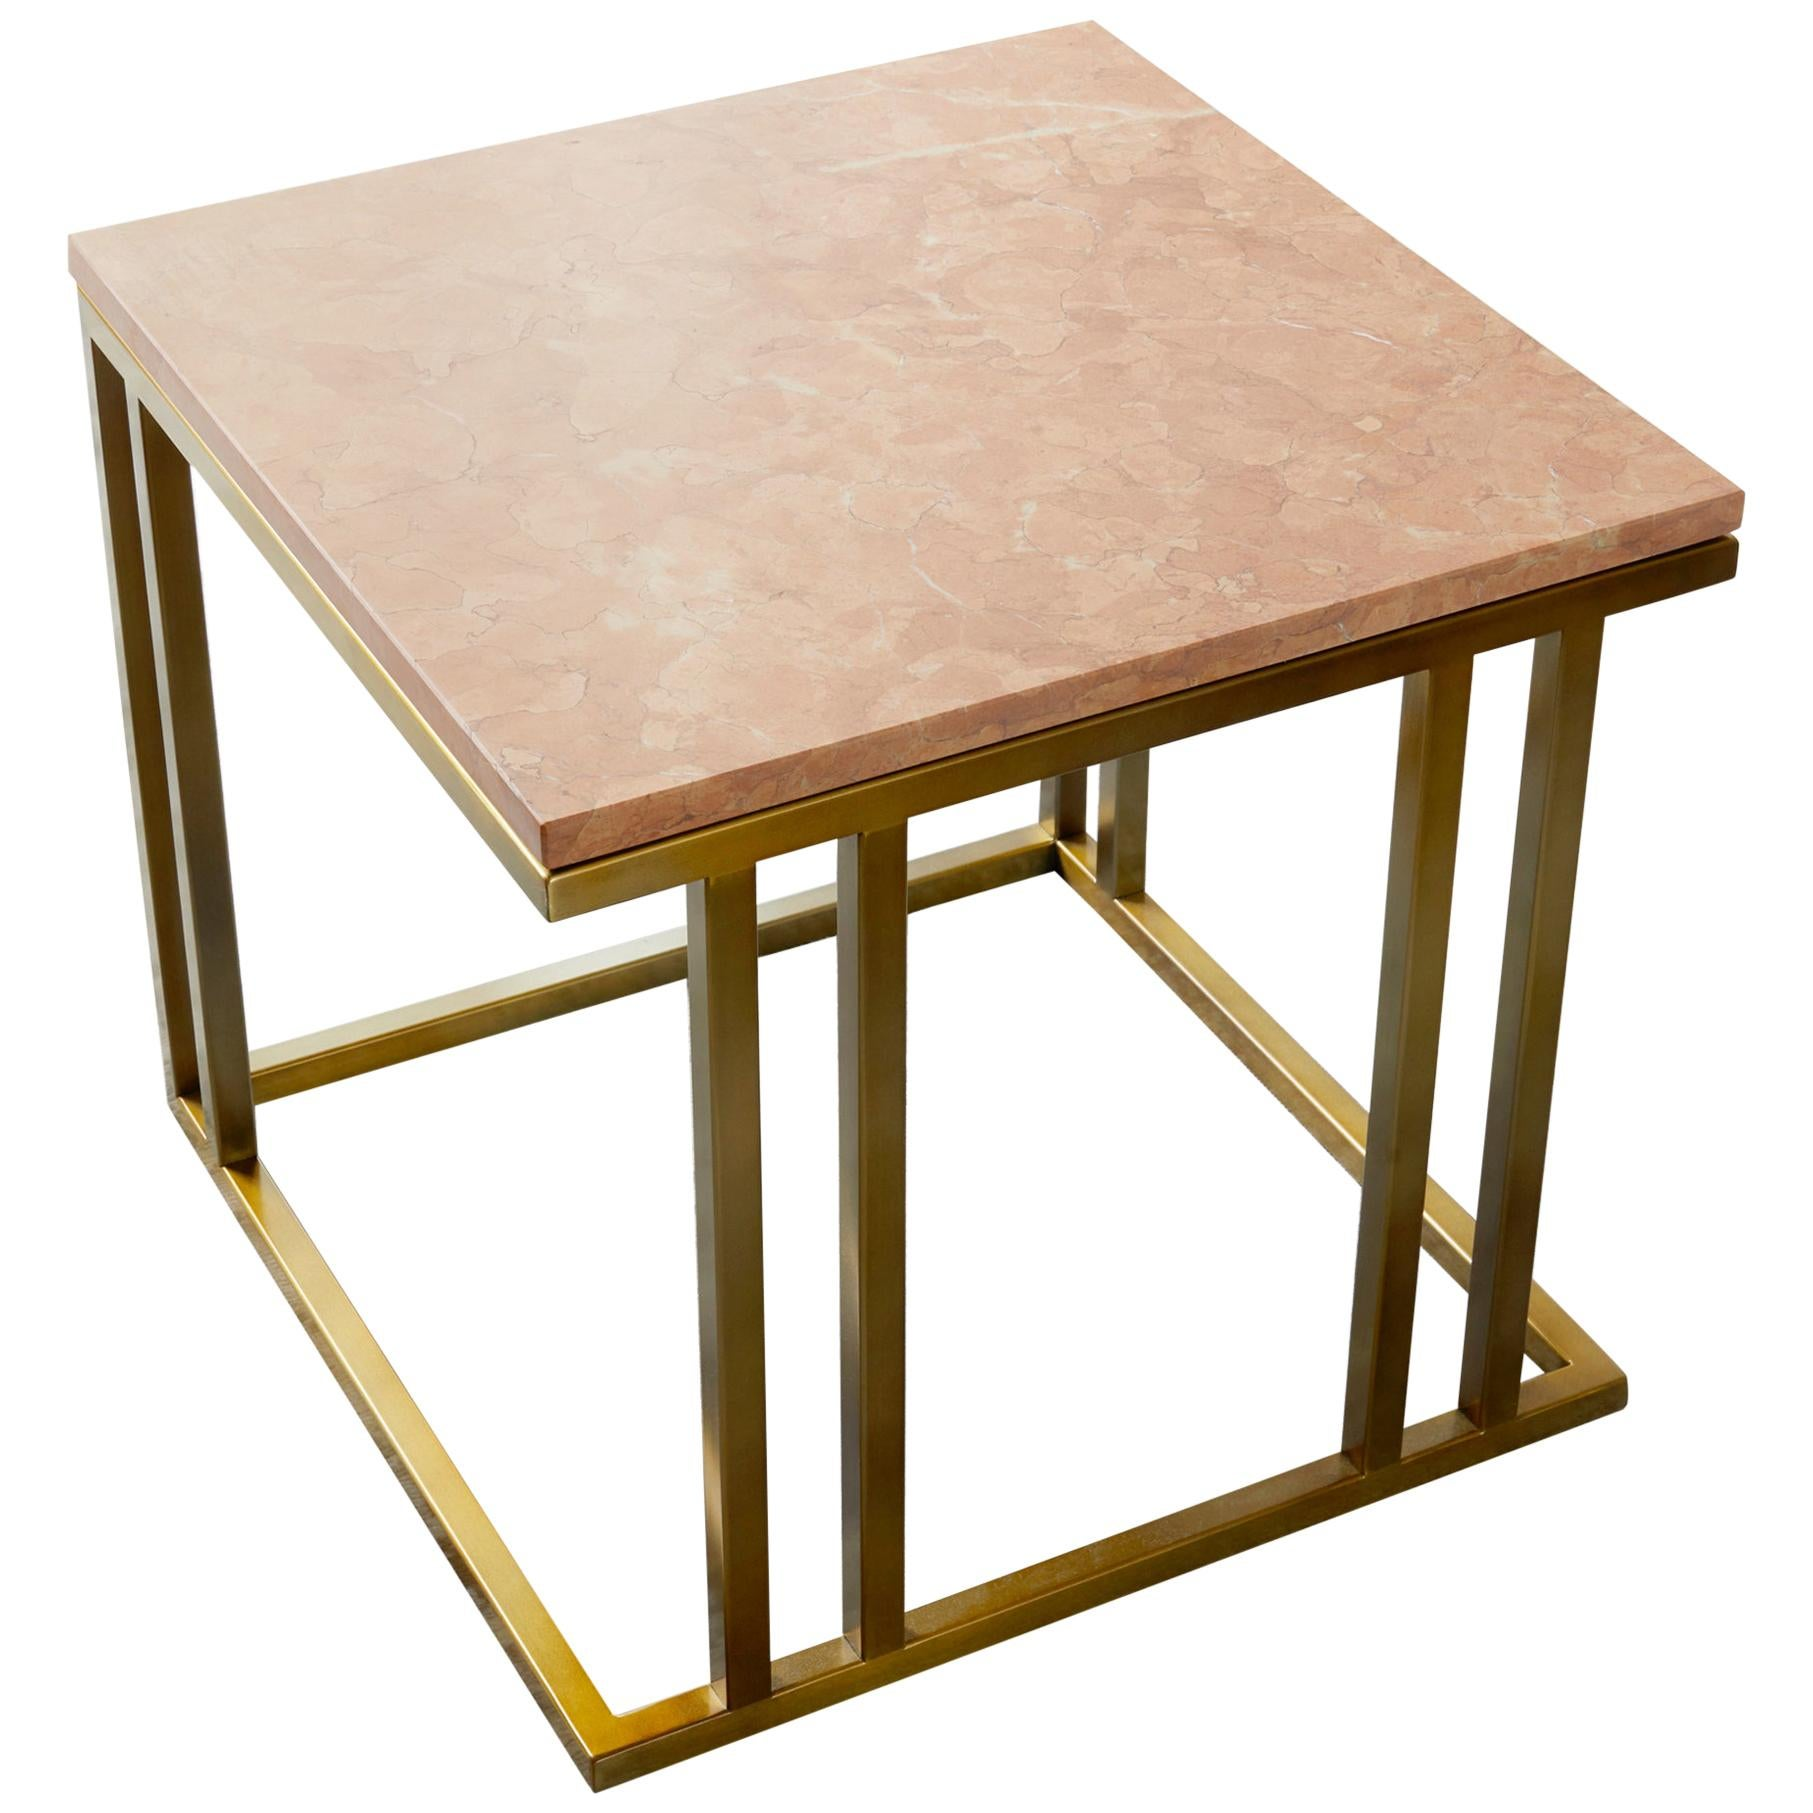 Art Deco Inspired Elio Side Table Antique Brushed Brass Tint Structure & Marble